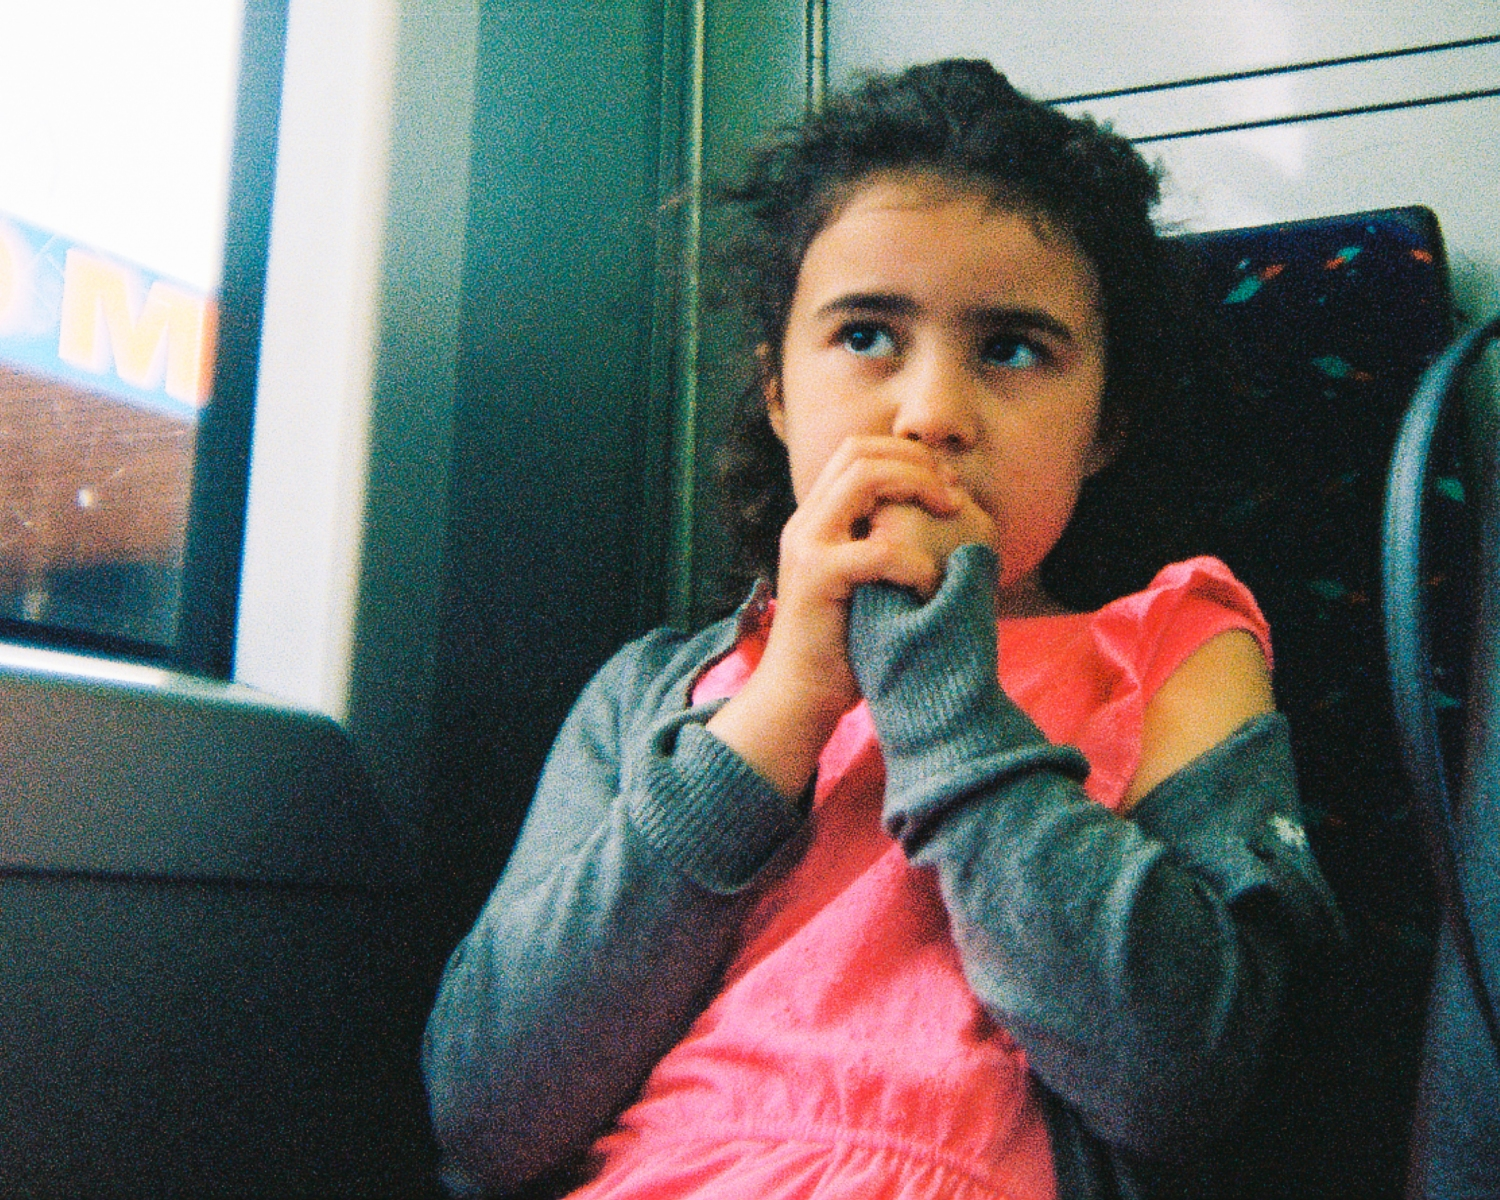 girl-on-the-train_003